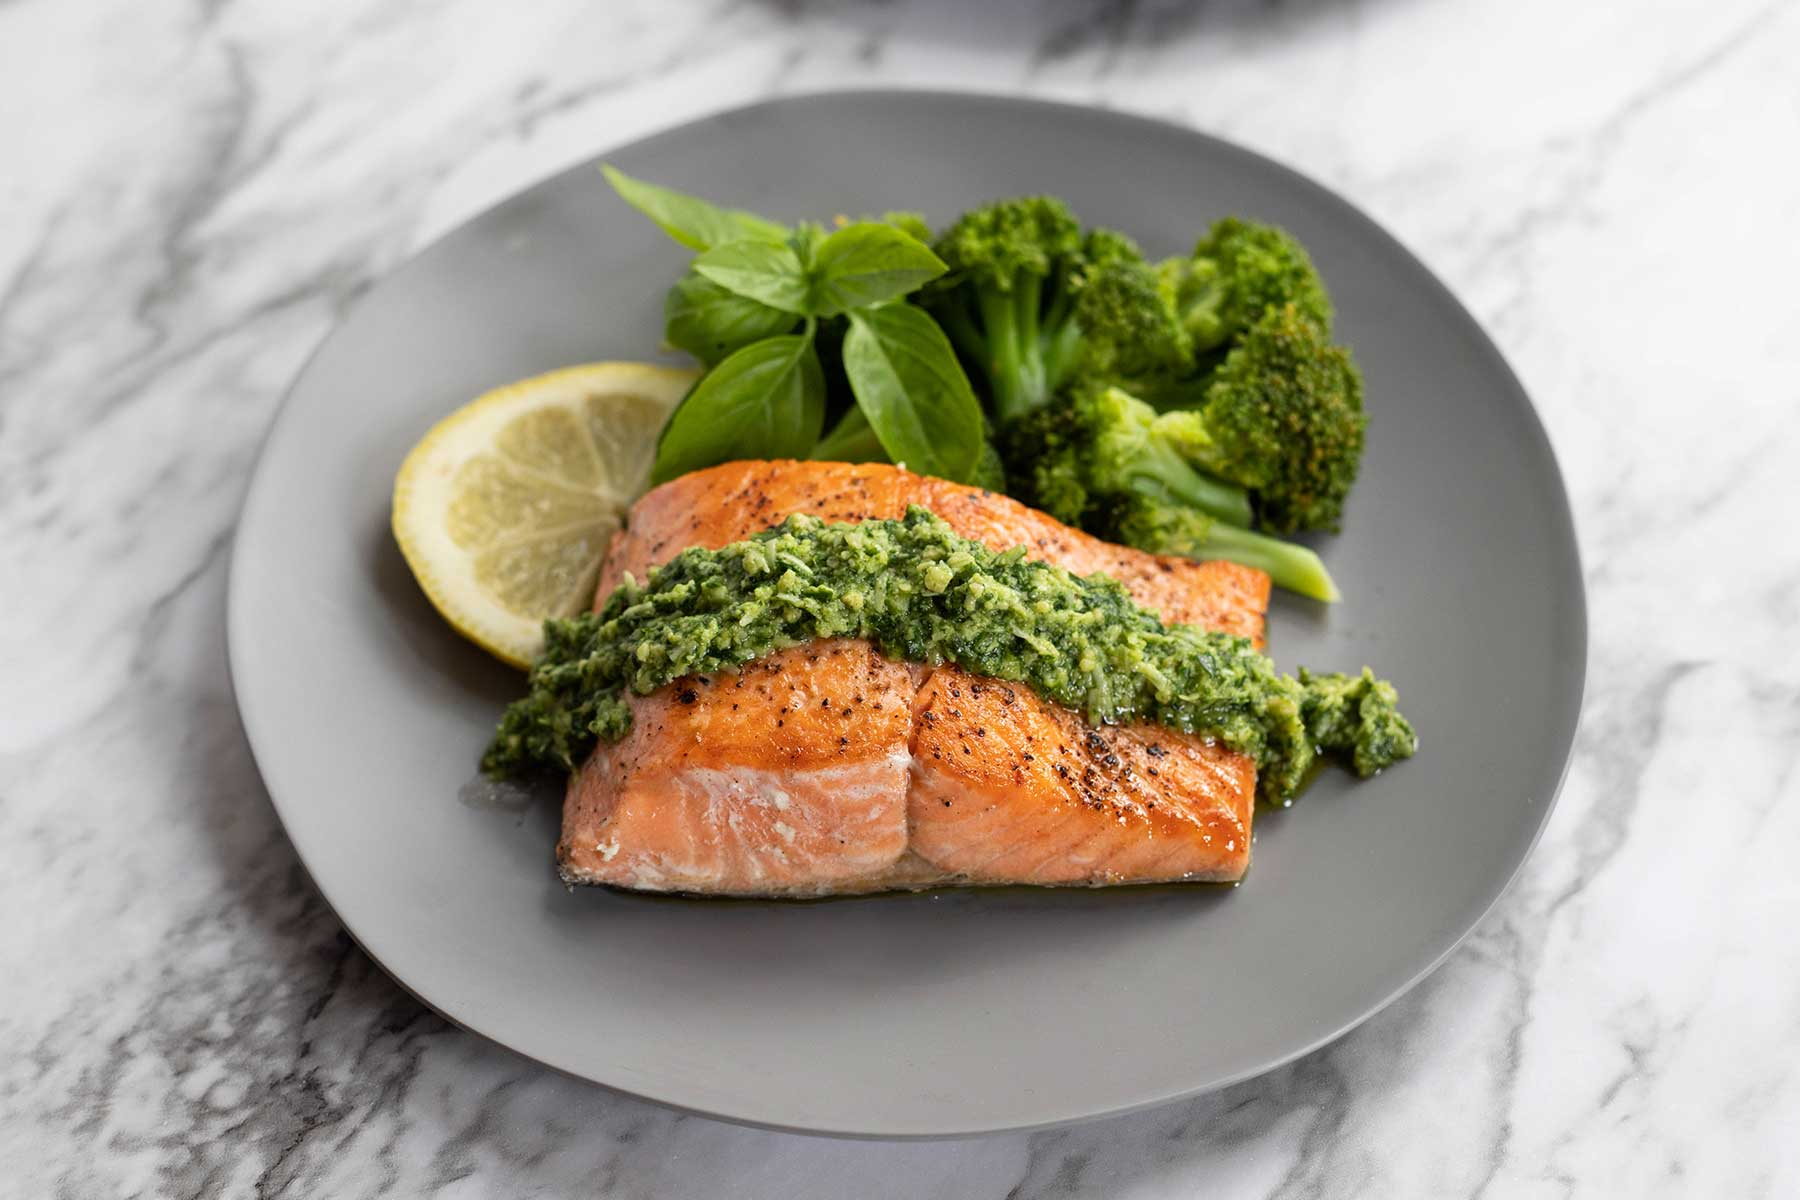 Plated dish of mixed herb pesto and coho salmon